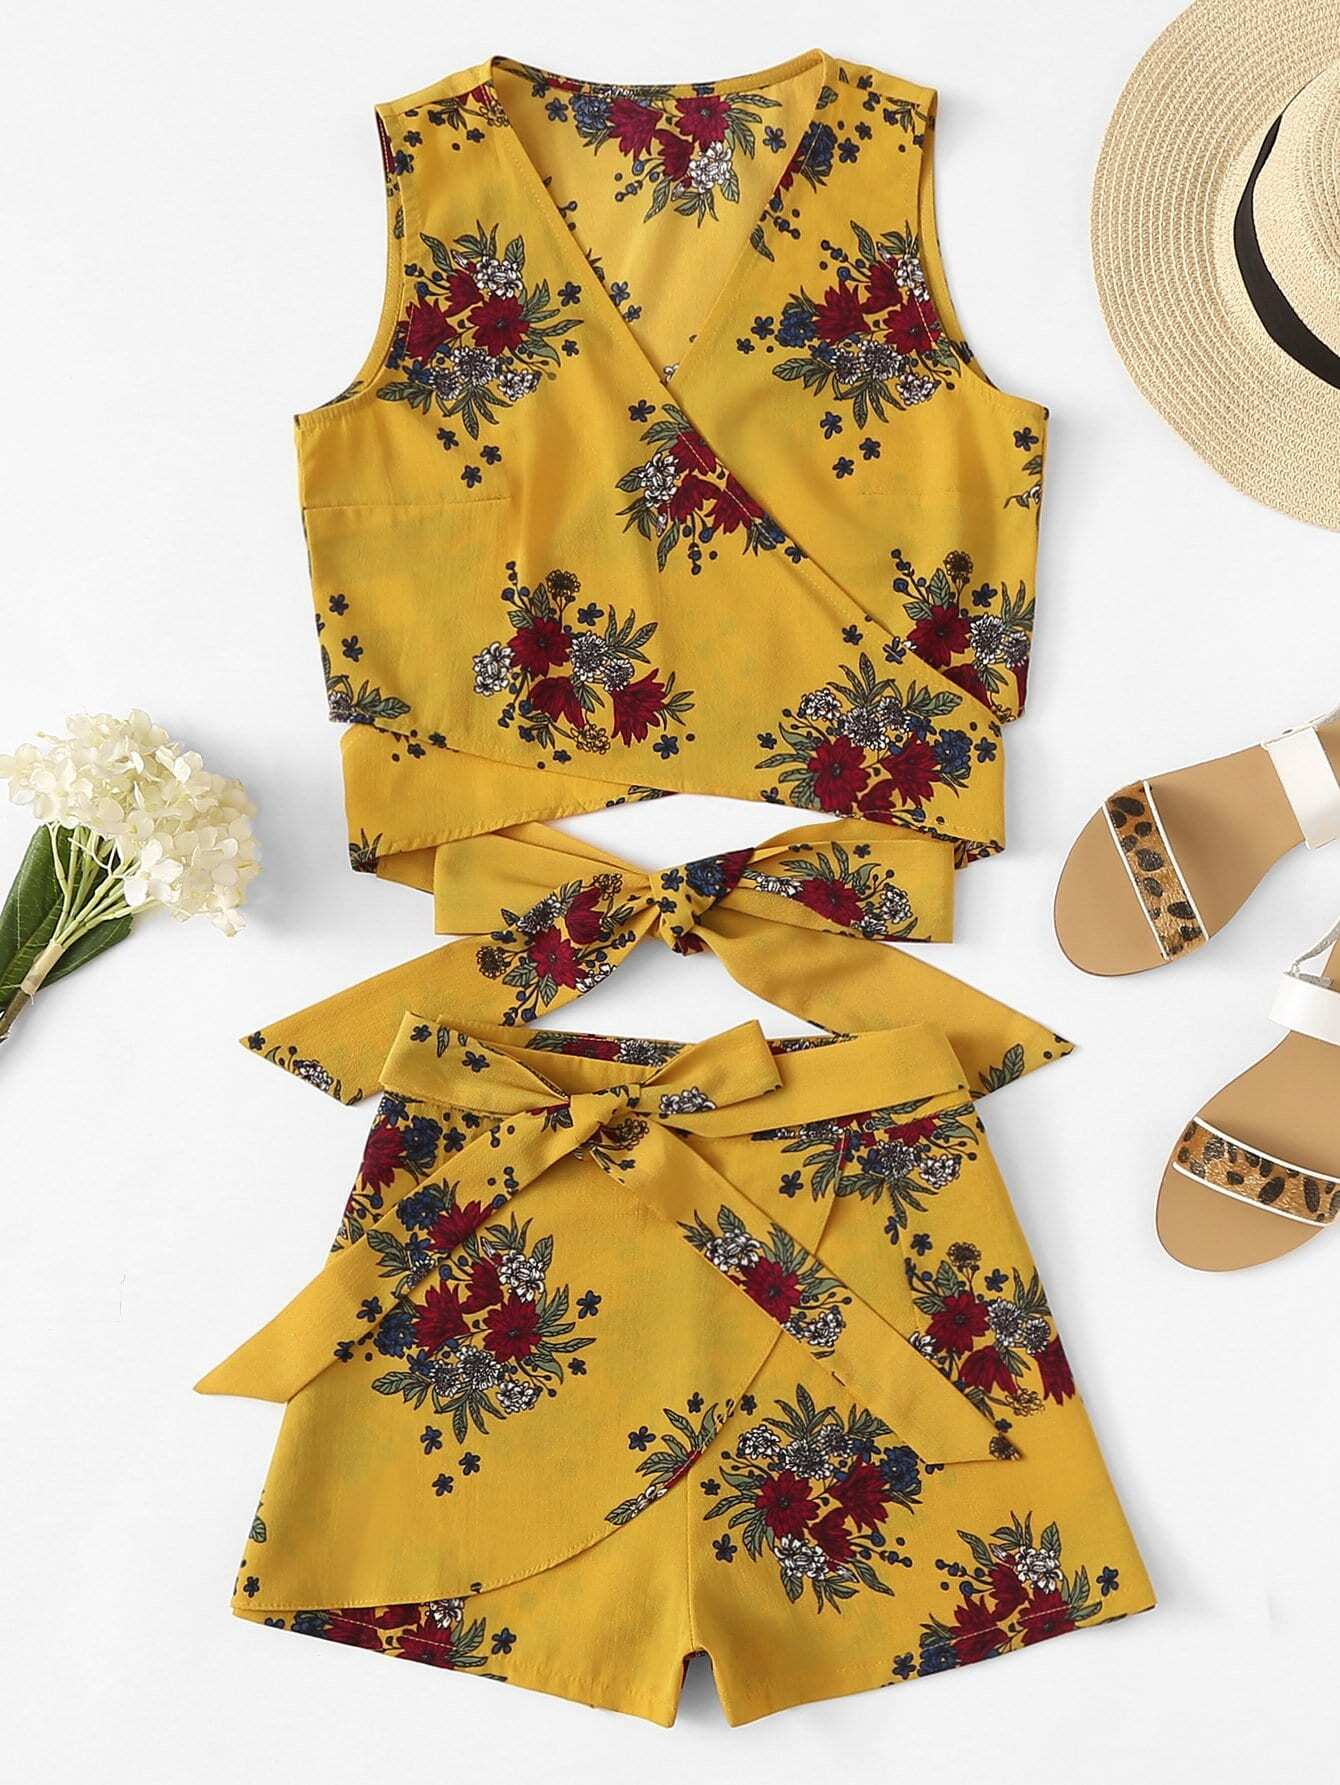 Floral Print Knot Hem Top With Shorts floral applique bowknot top with shorts